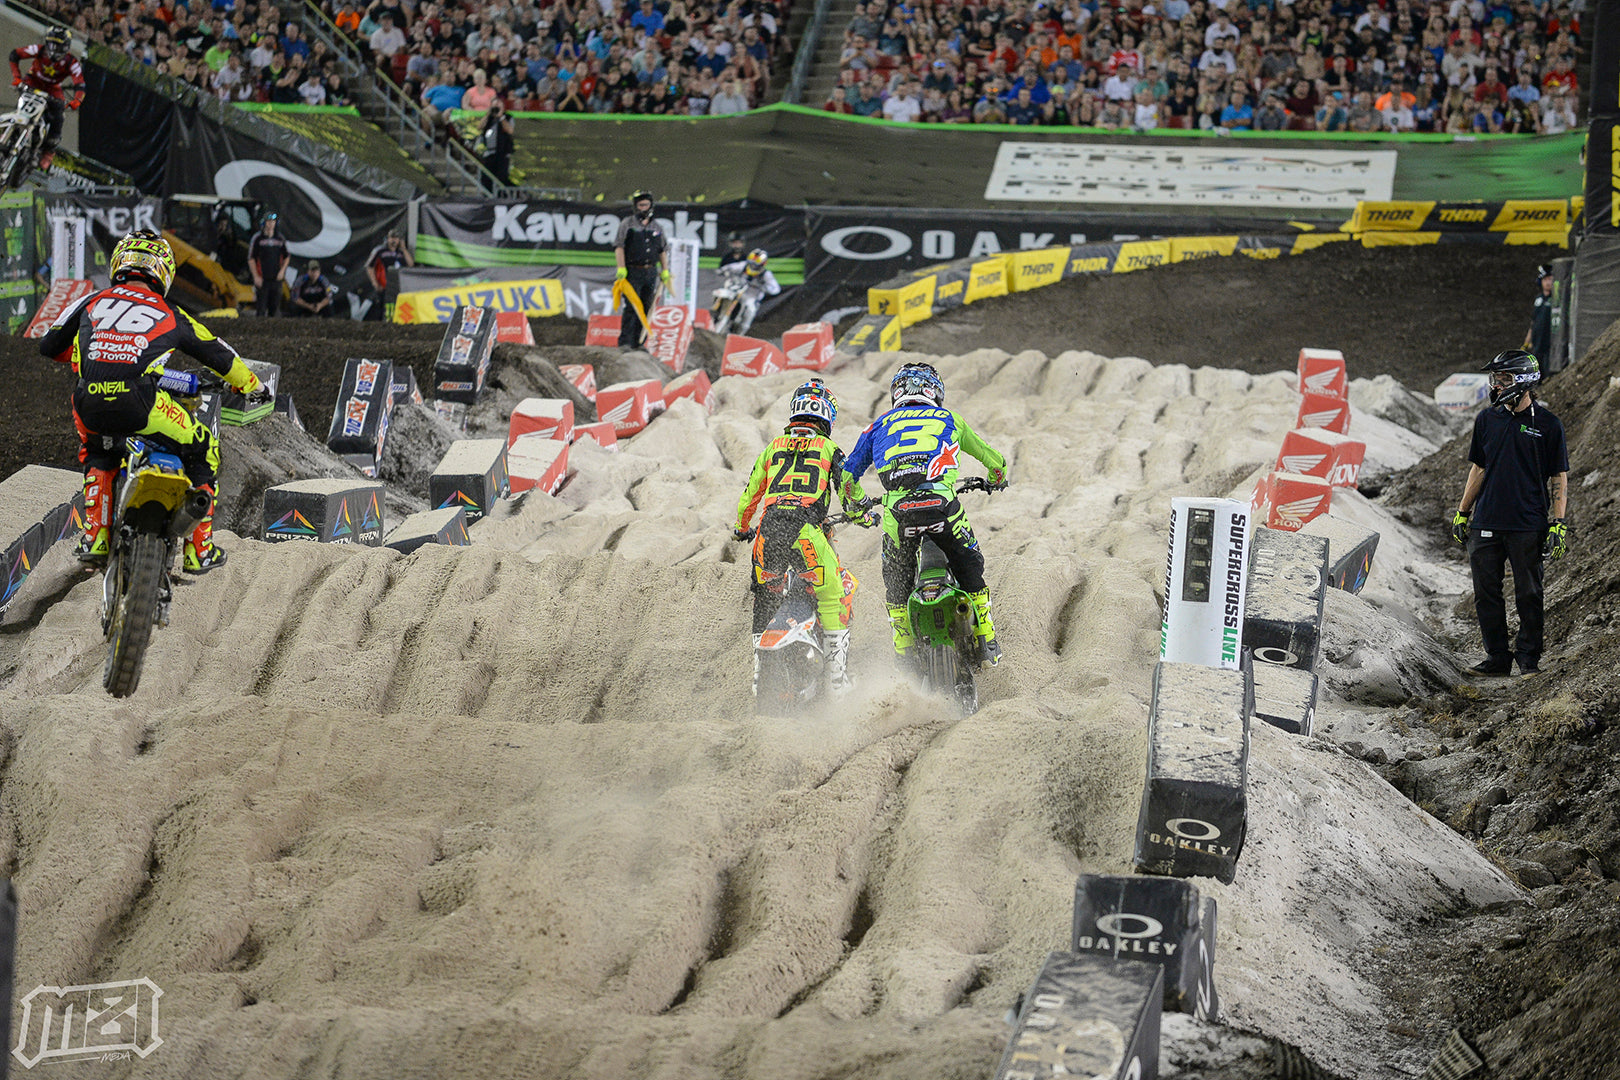 Tampa Supercross Sand Section Battle